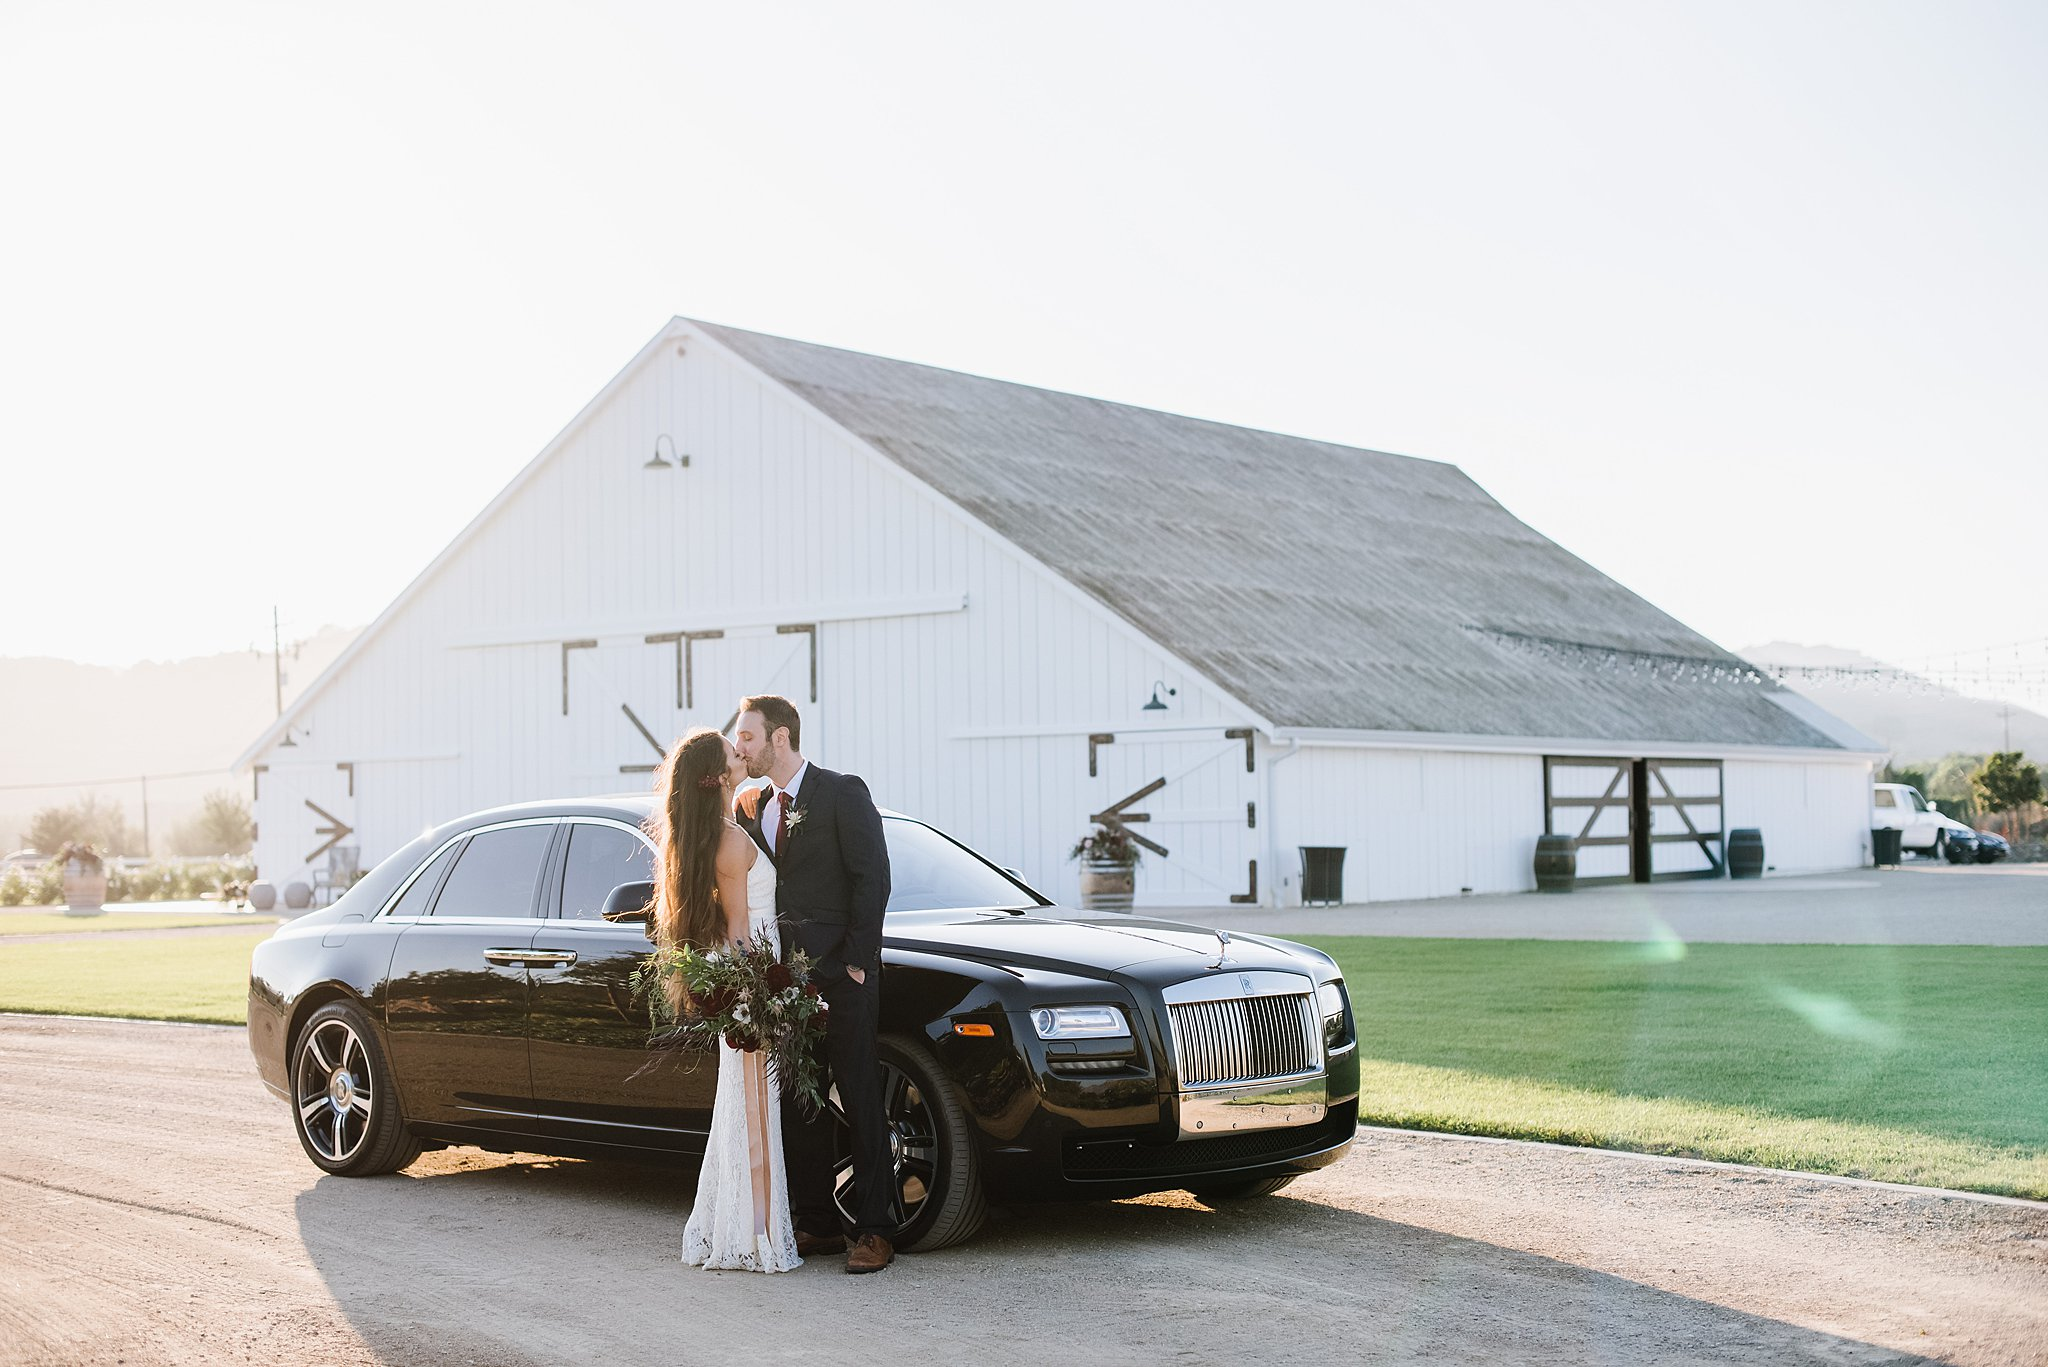 The White Barn and Rolls-Royce